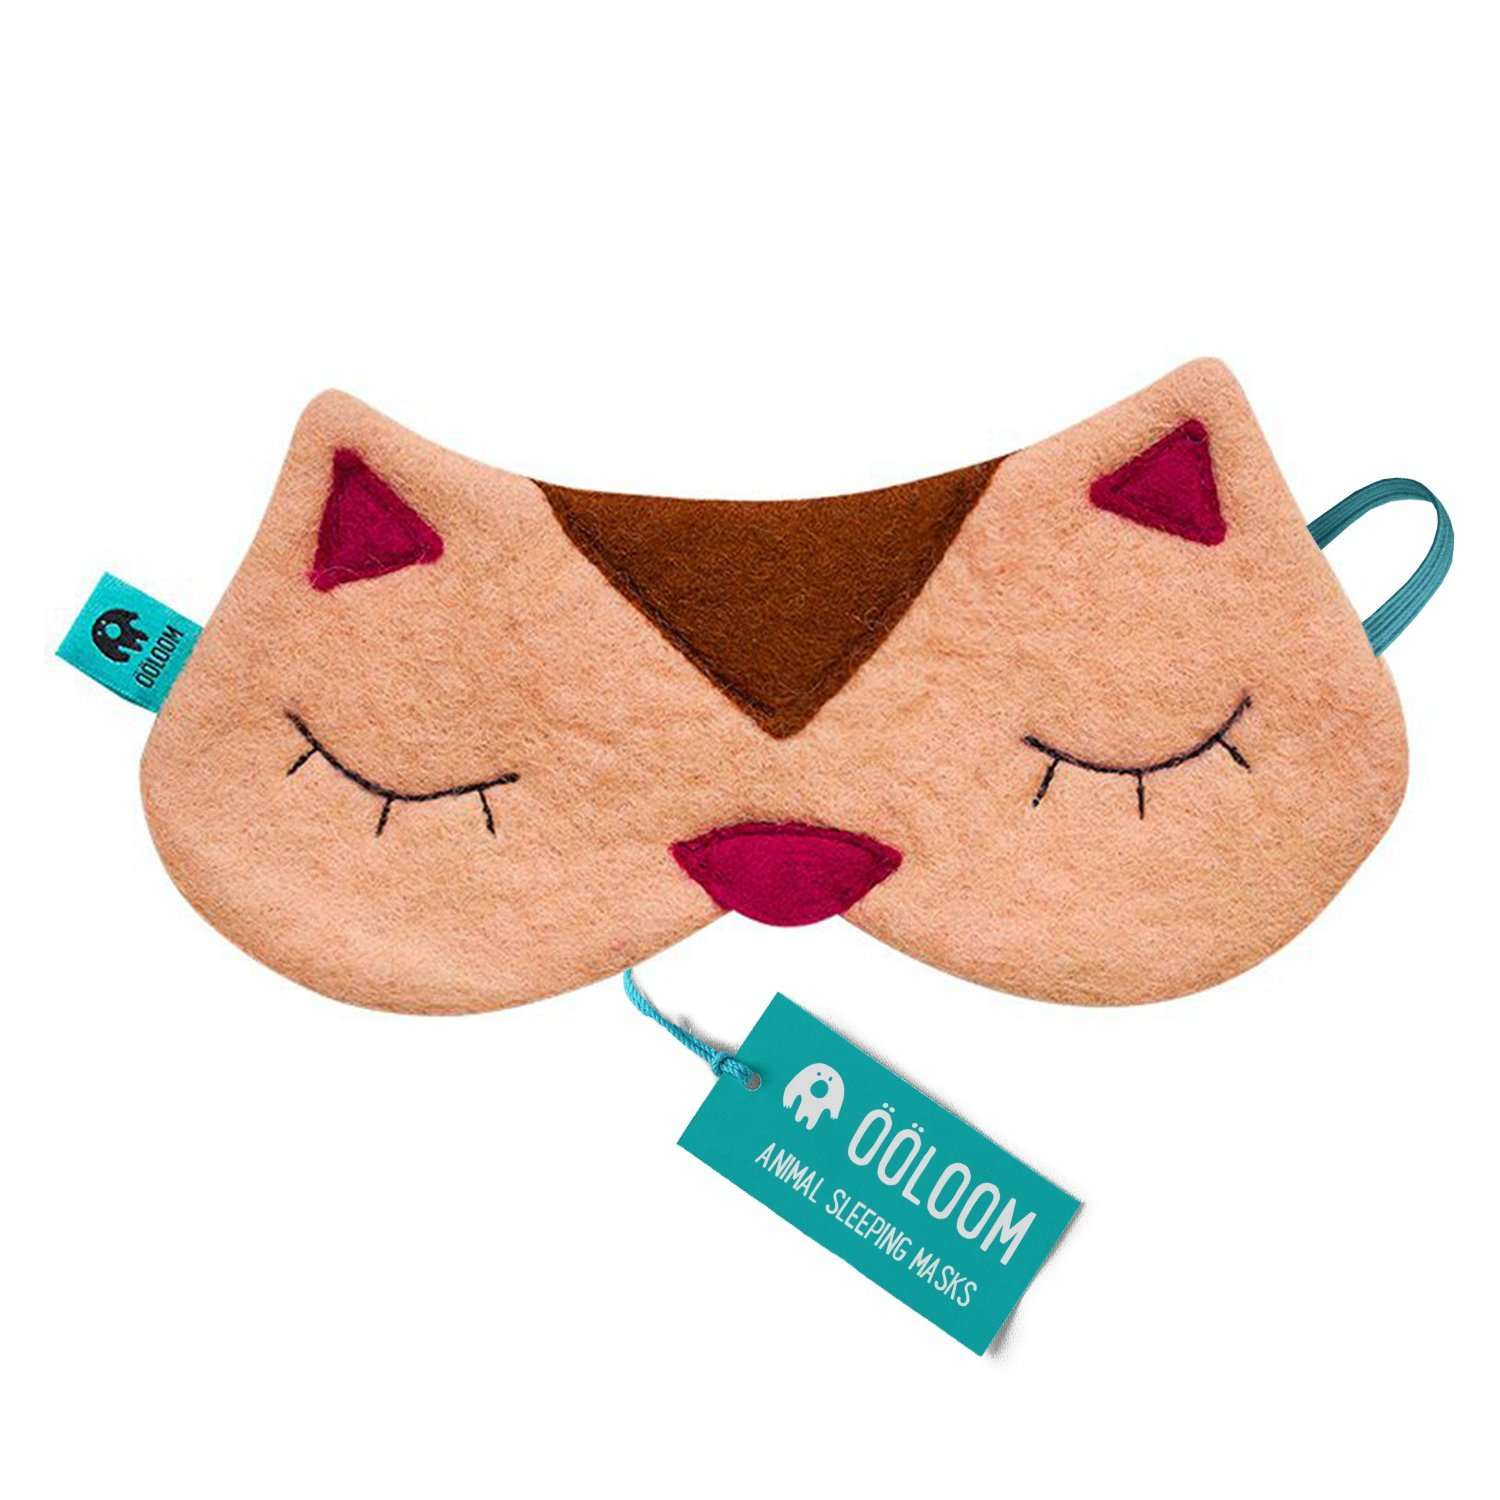 Cute Kitty Sleeping Mask - Beautifully Designed Gifts for Women & Men, Soft & Comfortable Blindfold for Total Blackout & Light Blocking, Best Eye Cover & Ultimate Sleep Aid for Travel & Night Sleep